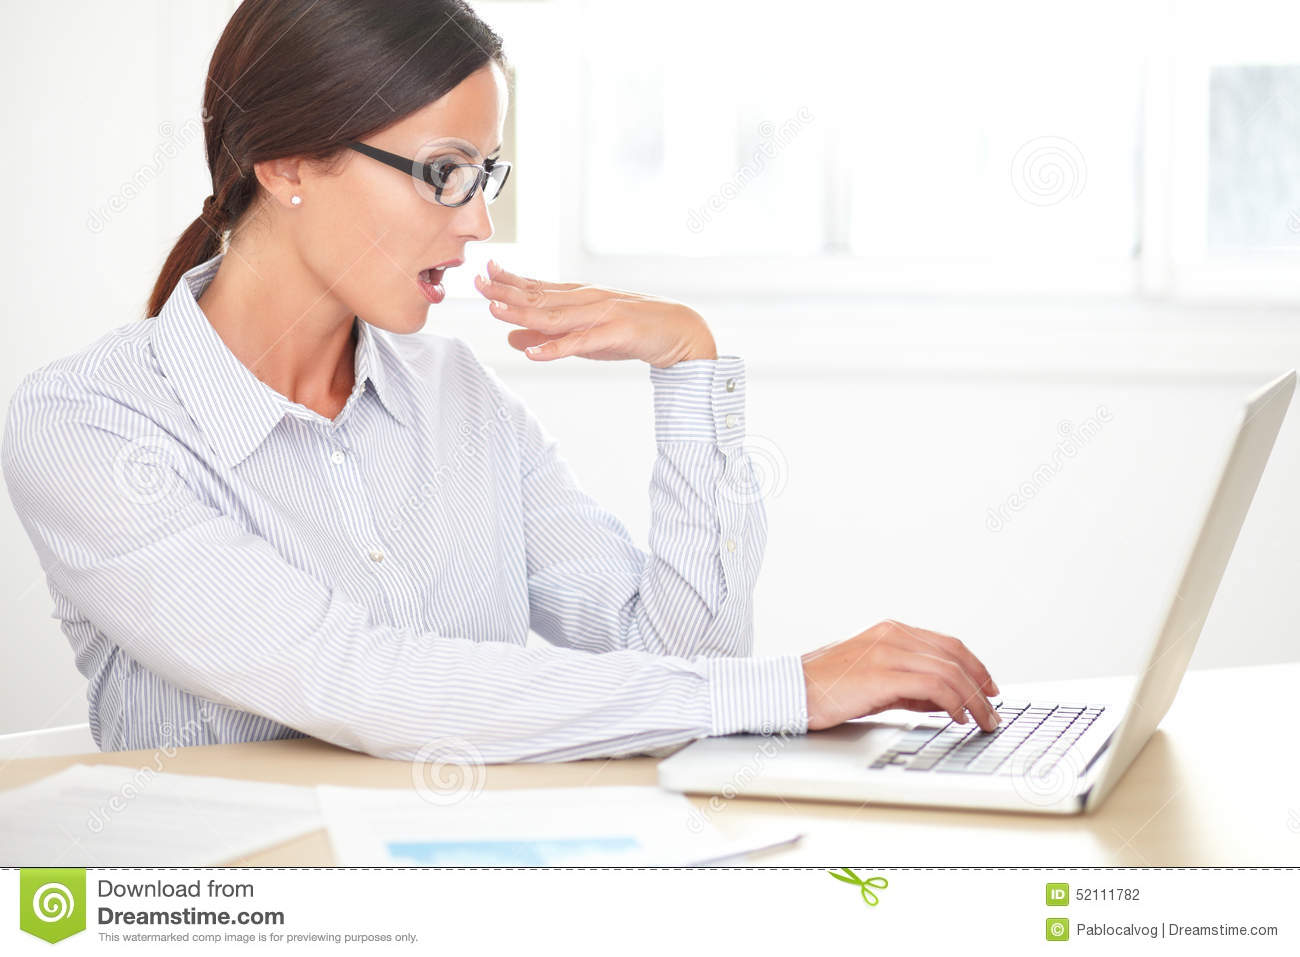 Secretary With Glasses Working On Desk Stock Photo - Image: 52111782